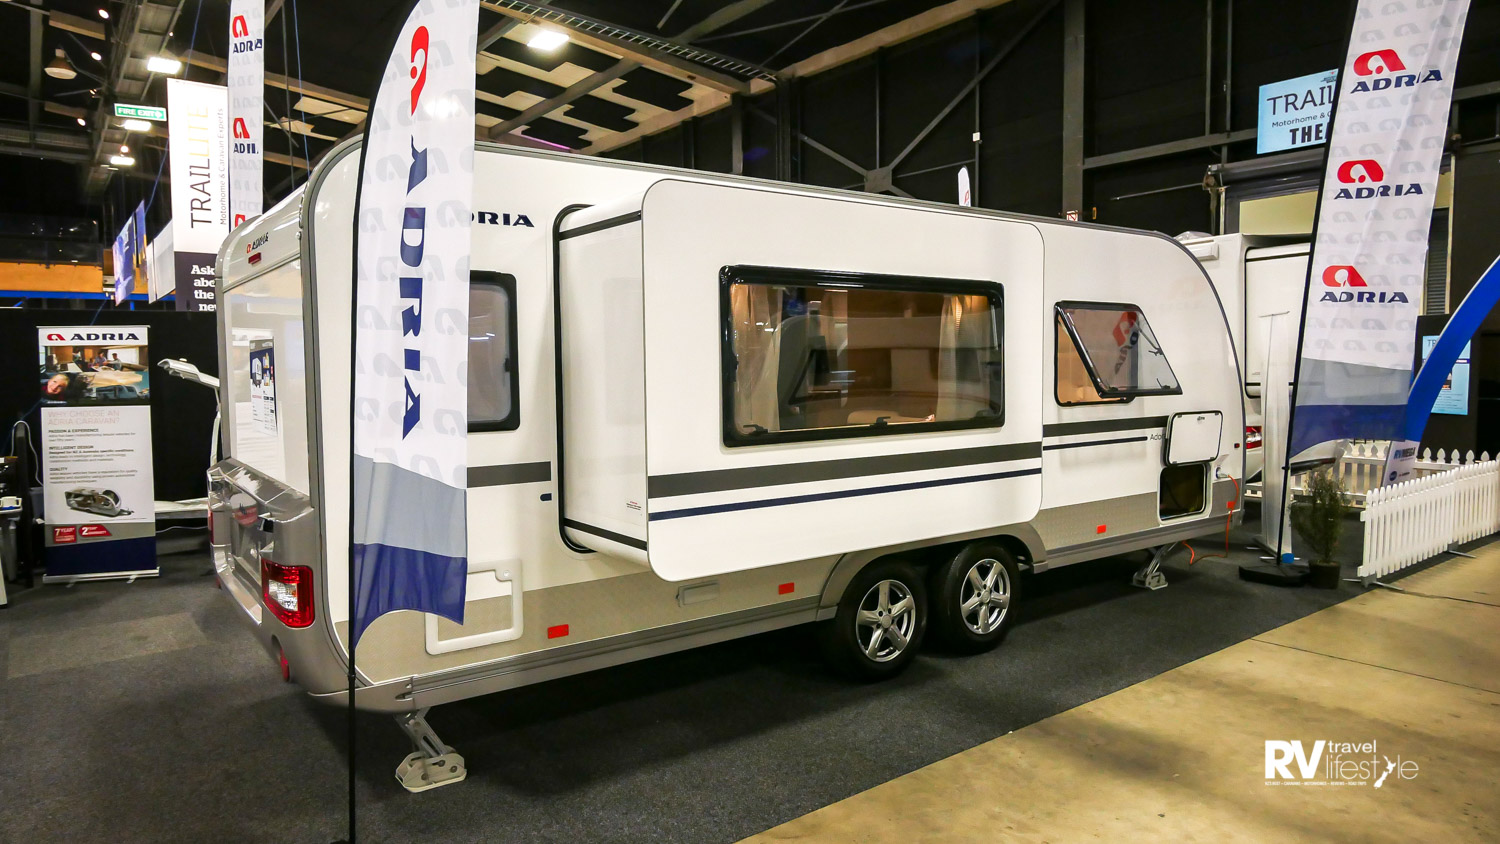 The slide-out gives a lot of interior space for the dining-entertainment-kitchen areas in the middle of the caravan